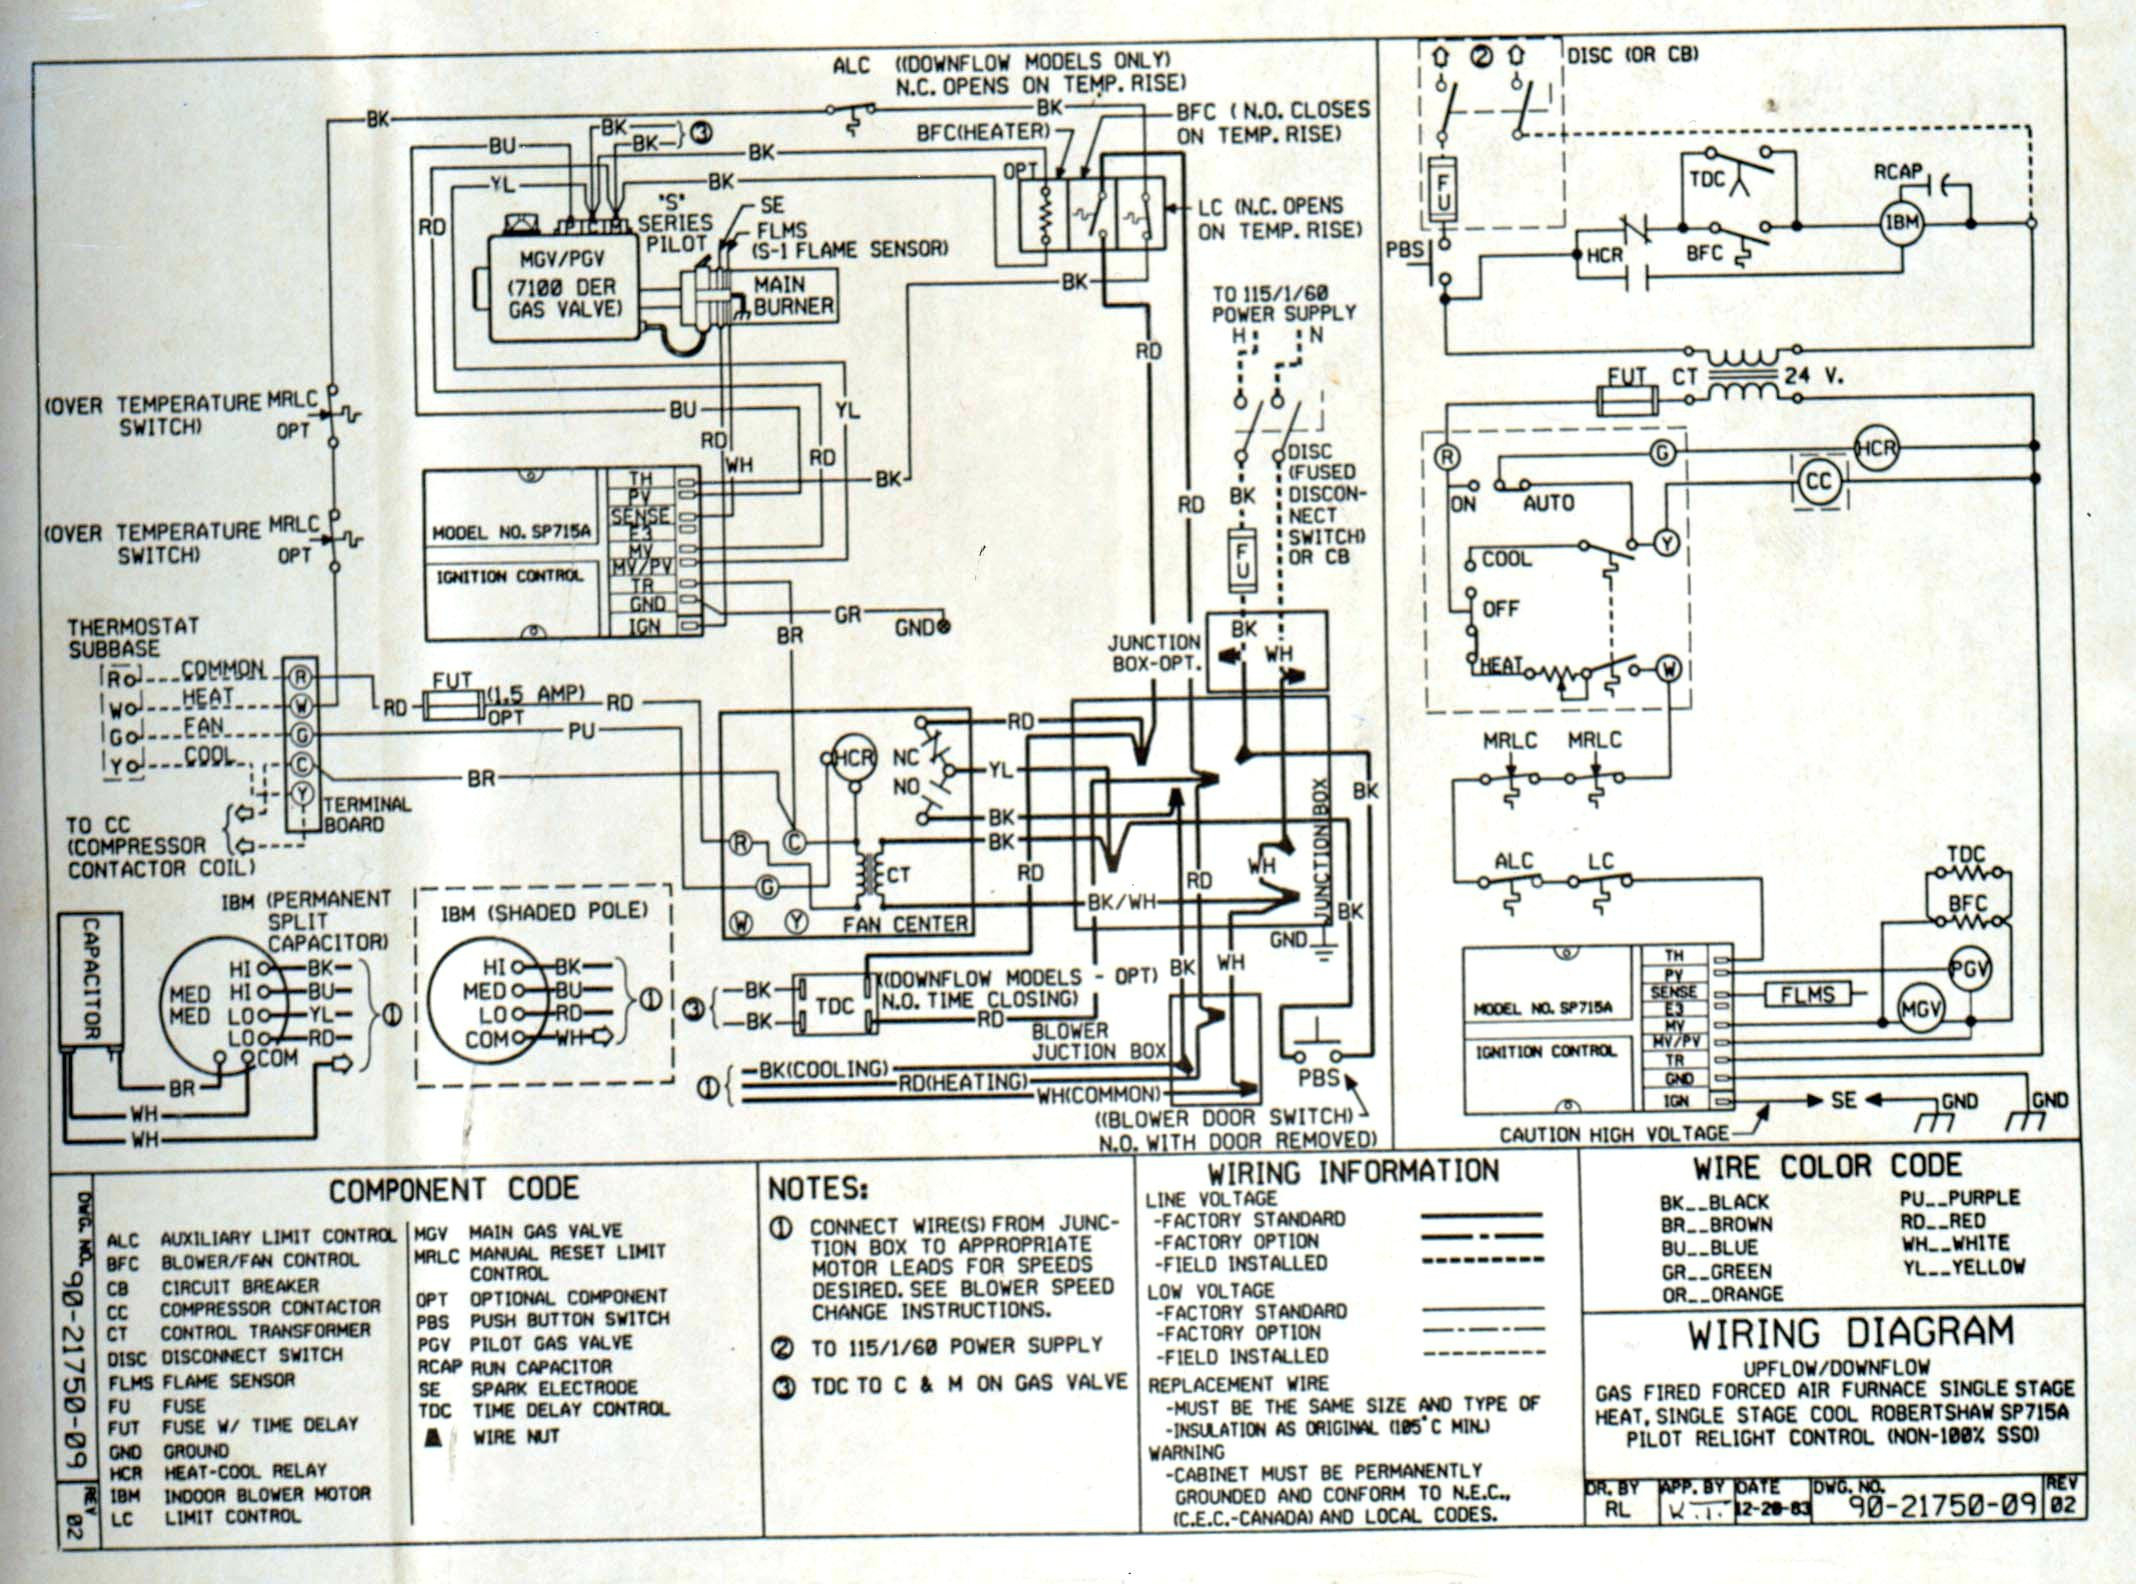 carrier furnace wiring diagram Collection-Carrier Furnace Wiring Diagram New Wiring Diagrams For Gas Furnace Valid Refrence Wiring Diagram For 11-f